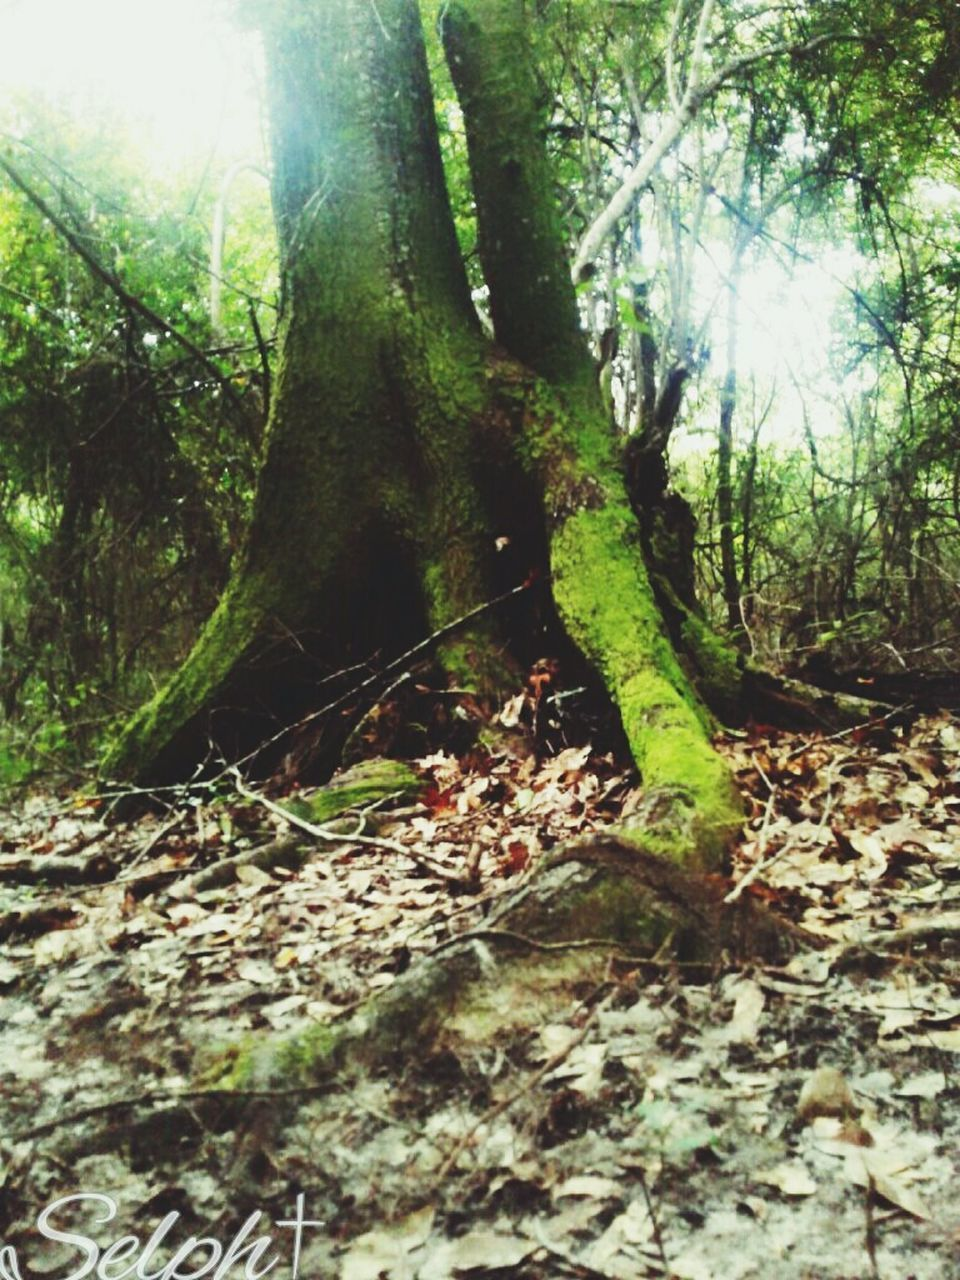 forest, nature, tree, tree trunk, tranquility, growth, beauty in nature, day, no people, outdoors, wilderness, tranquil scene, leaf, scenics, branch, landscape, wilderness area, close-up